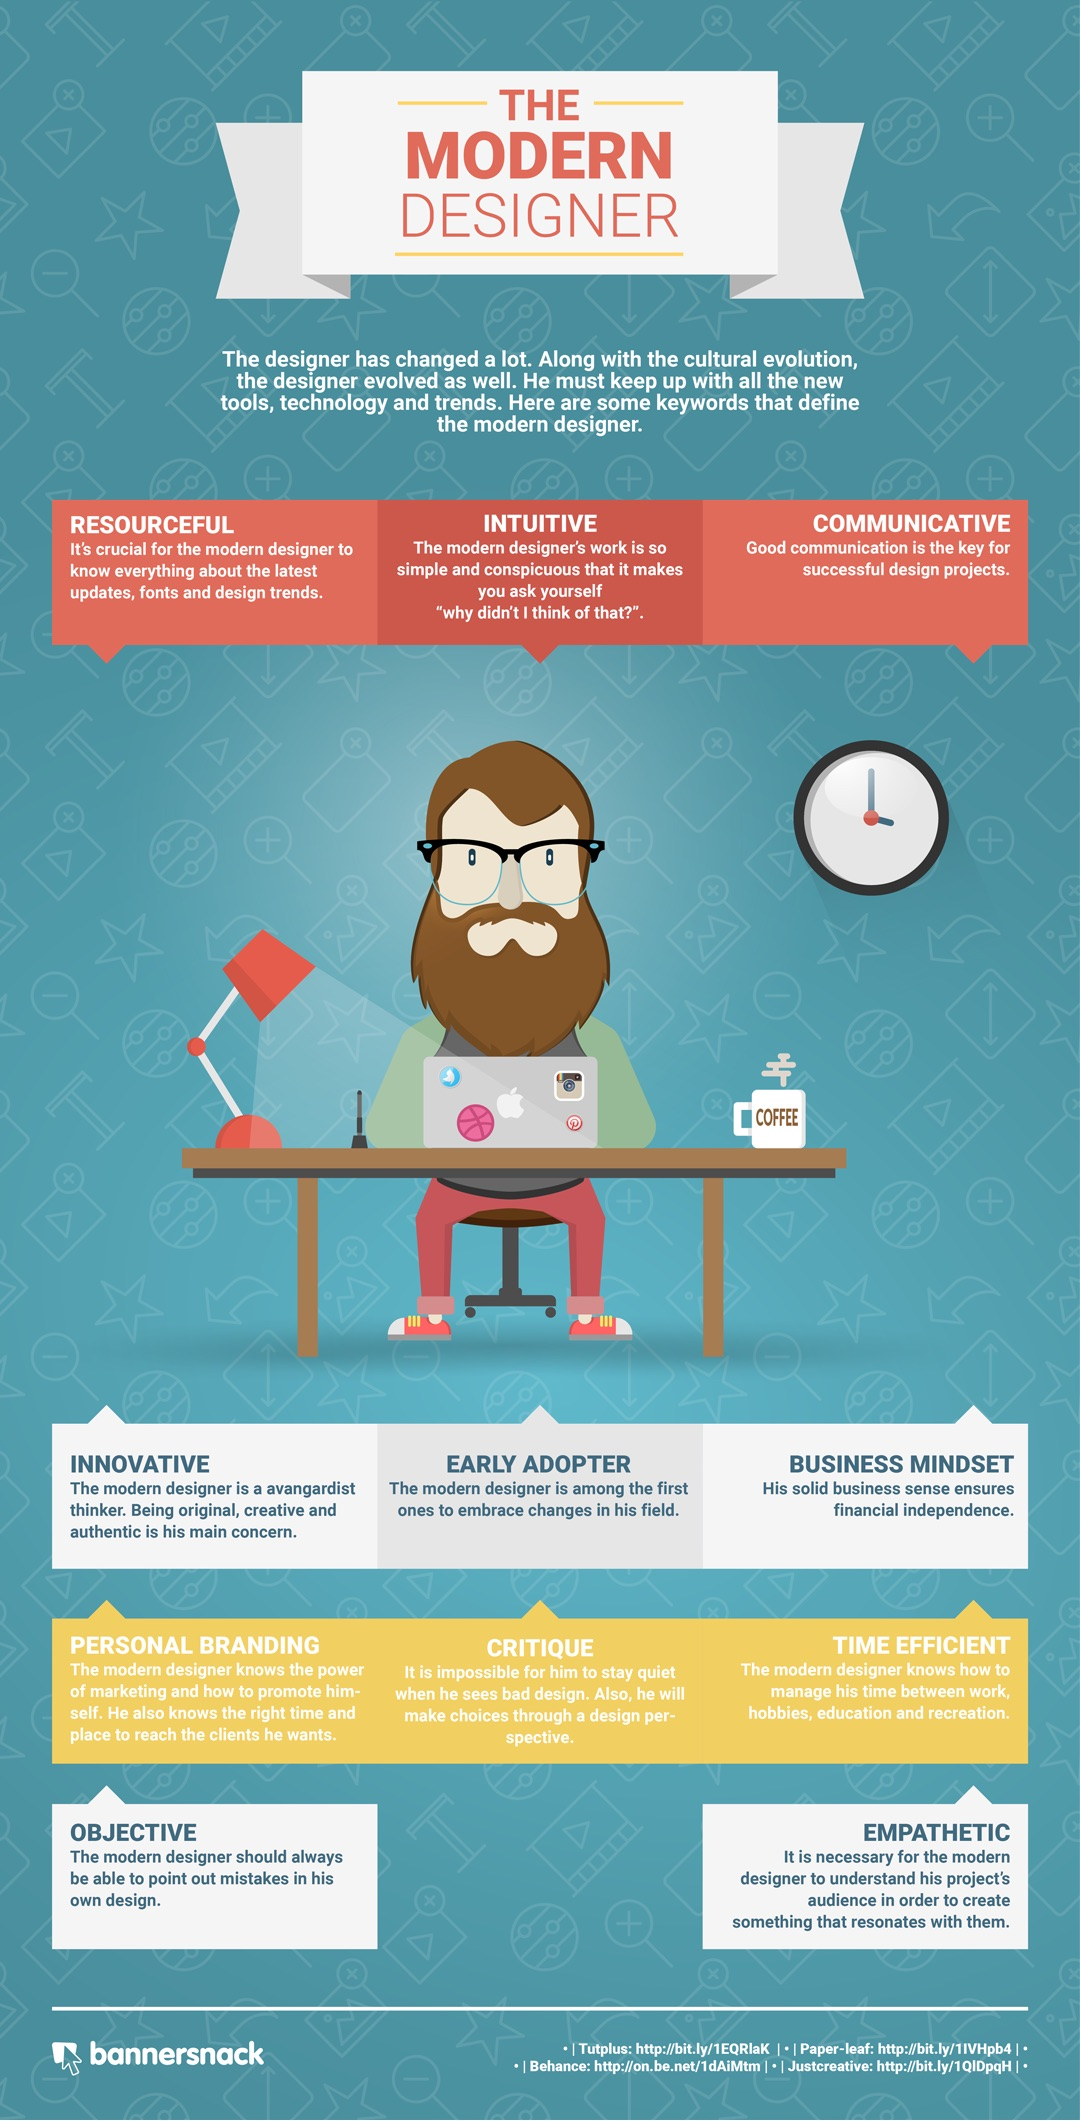 infographic characteristics of a modern designer com click image to view enlarged version